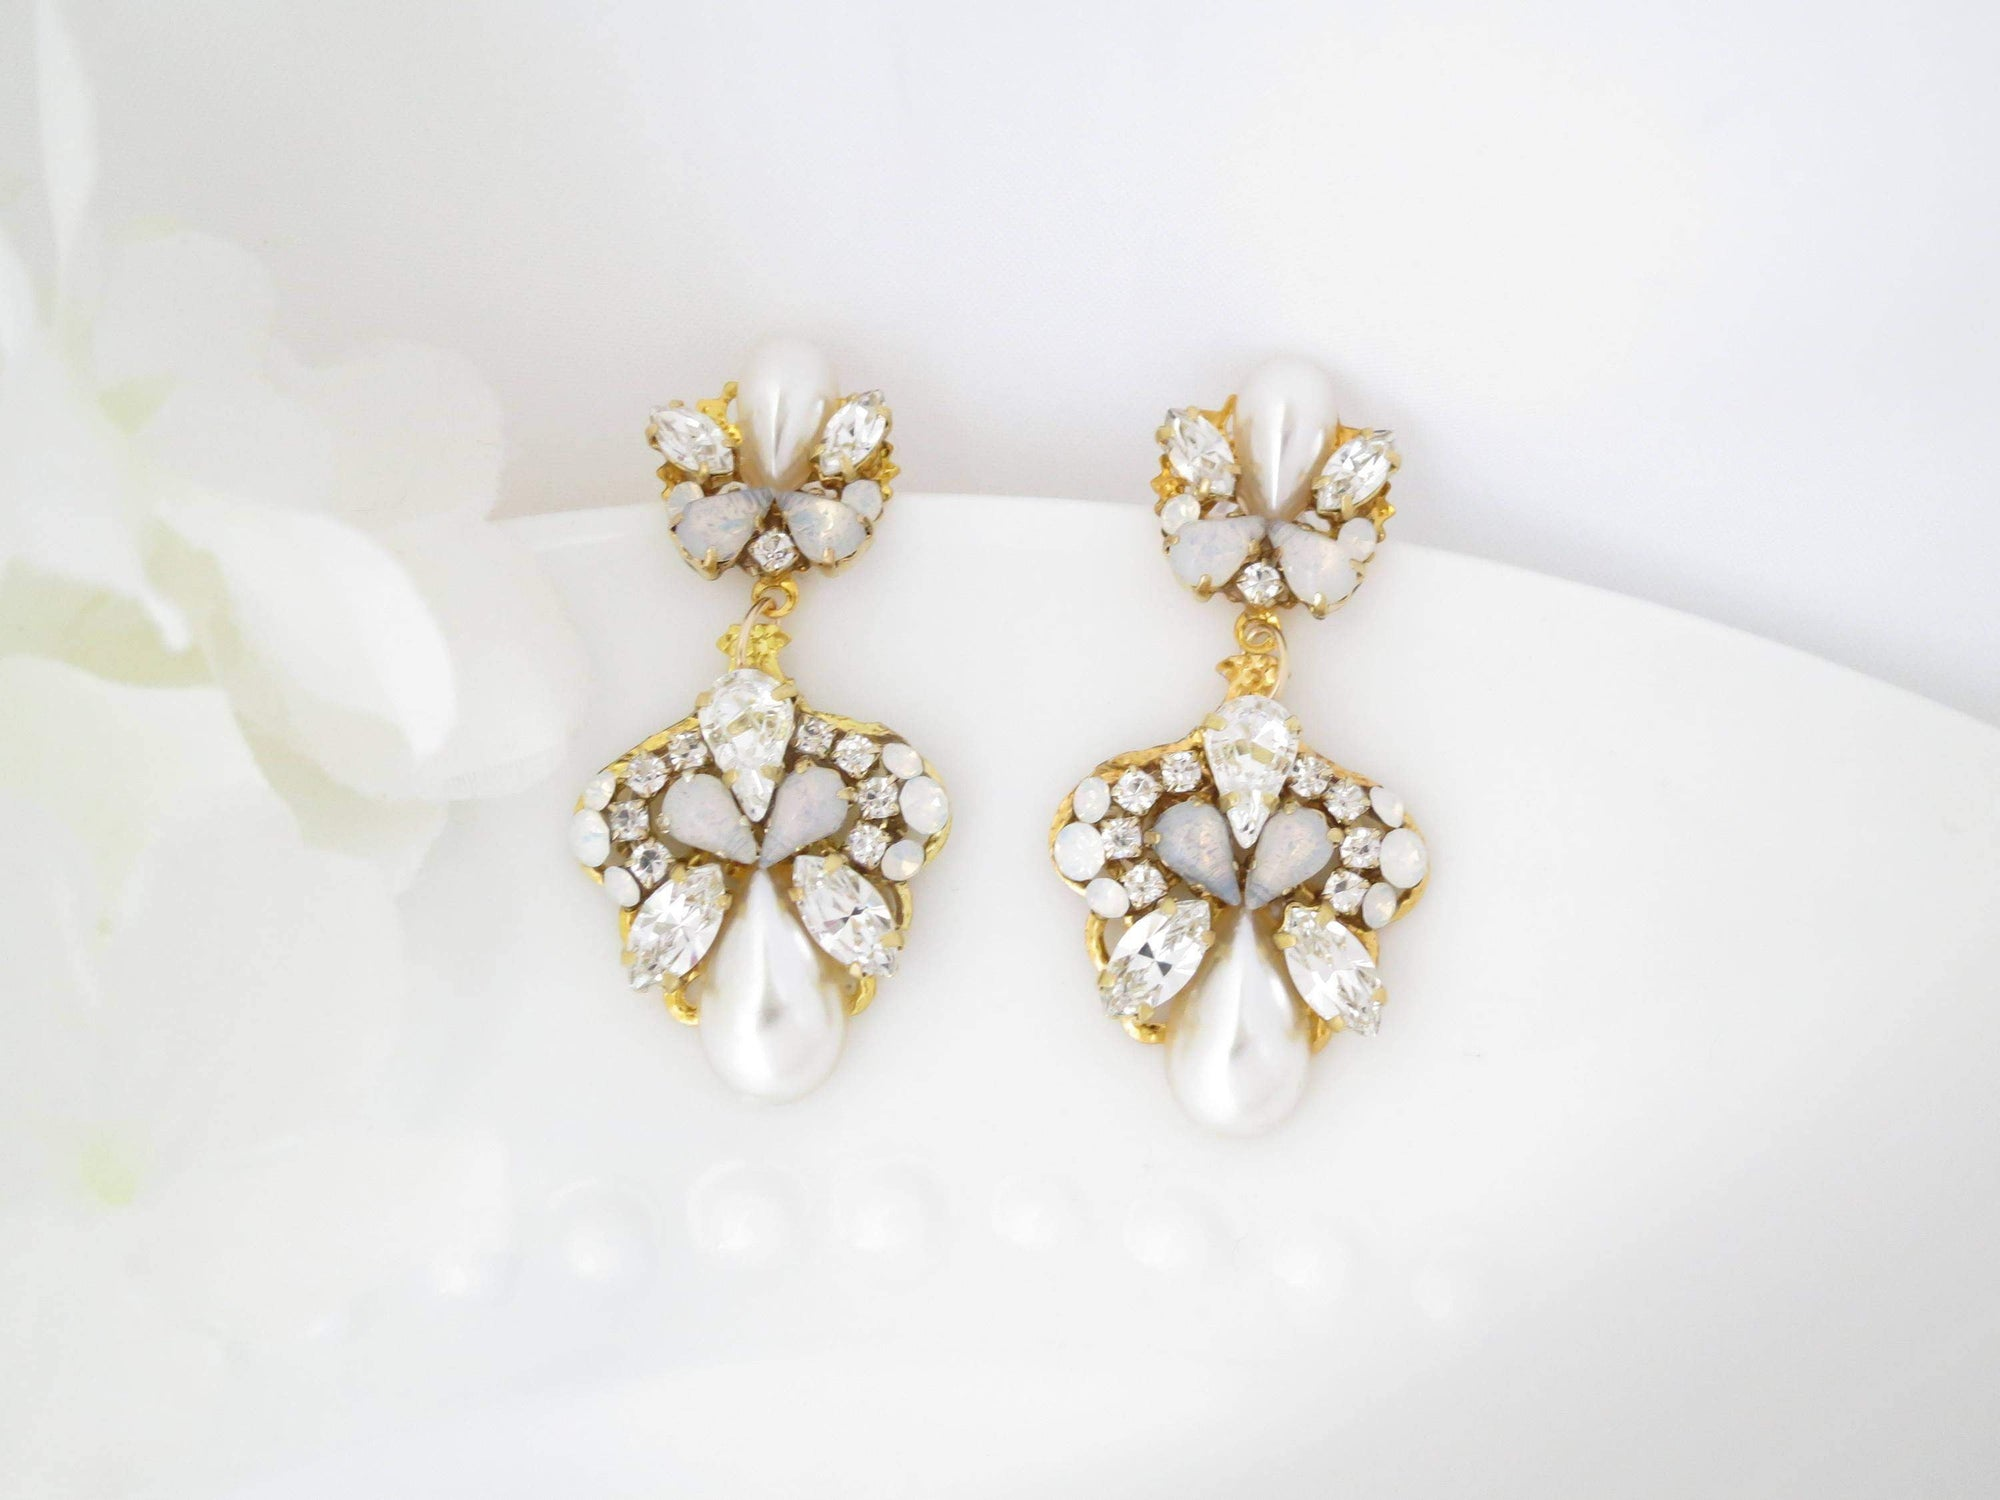 FARRAH:  Vintage Style Pearl Drop Bridal Earrings - BlingBaddaBoom - Minimalist, Vintage, Modern Wedding and Bridal Jewelry